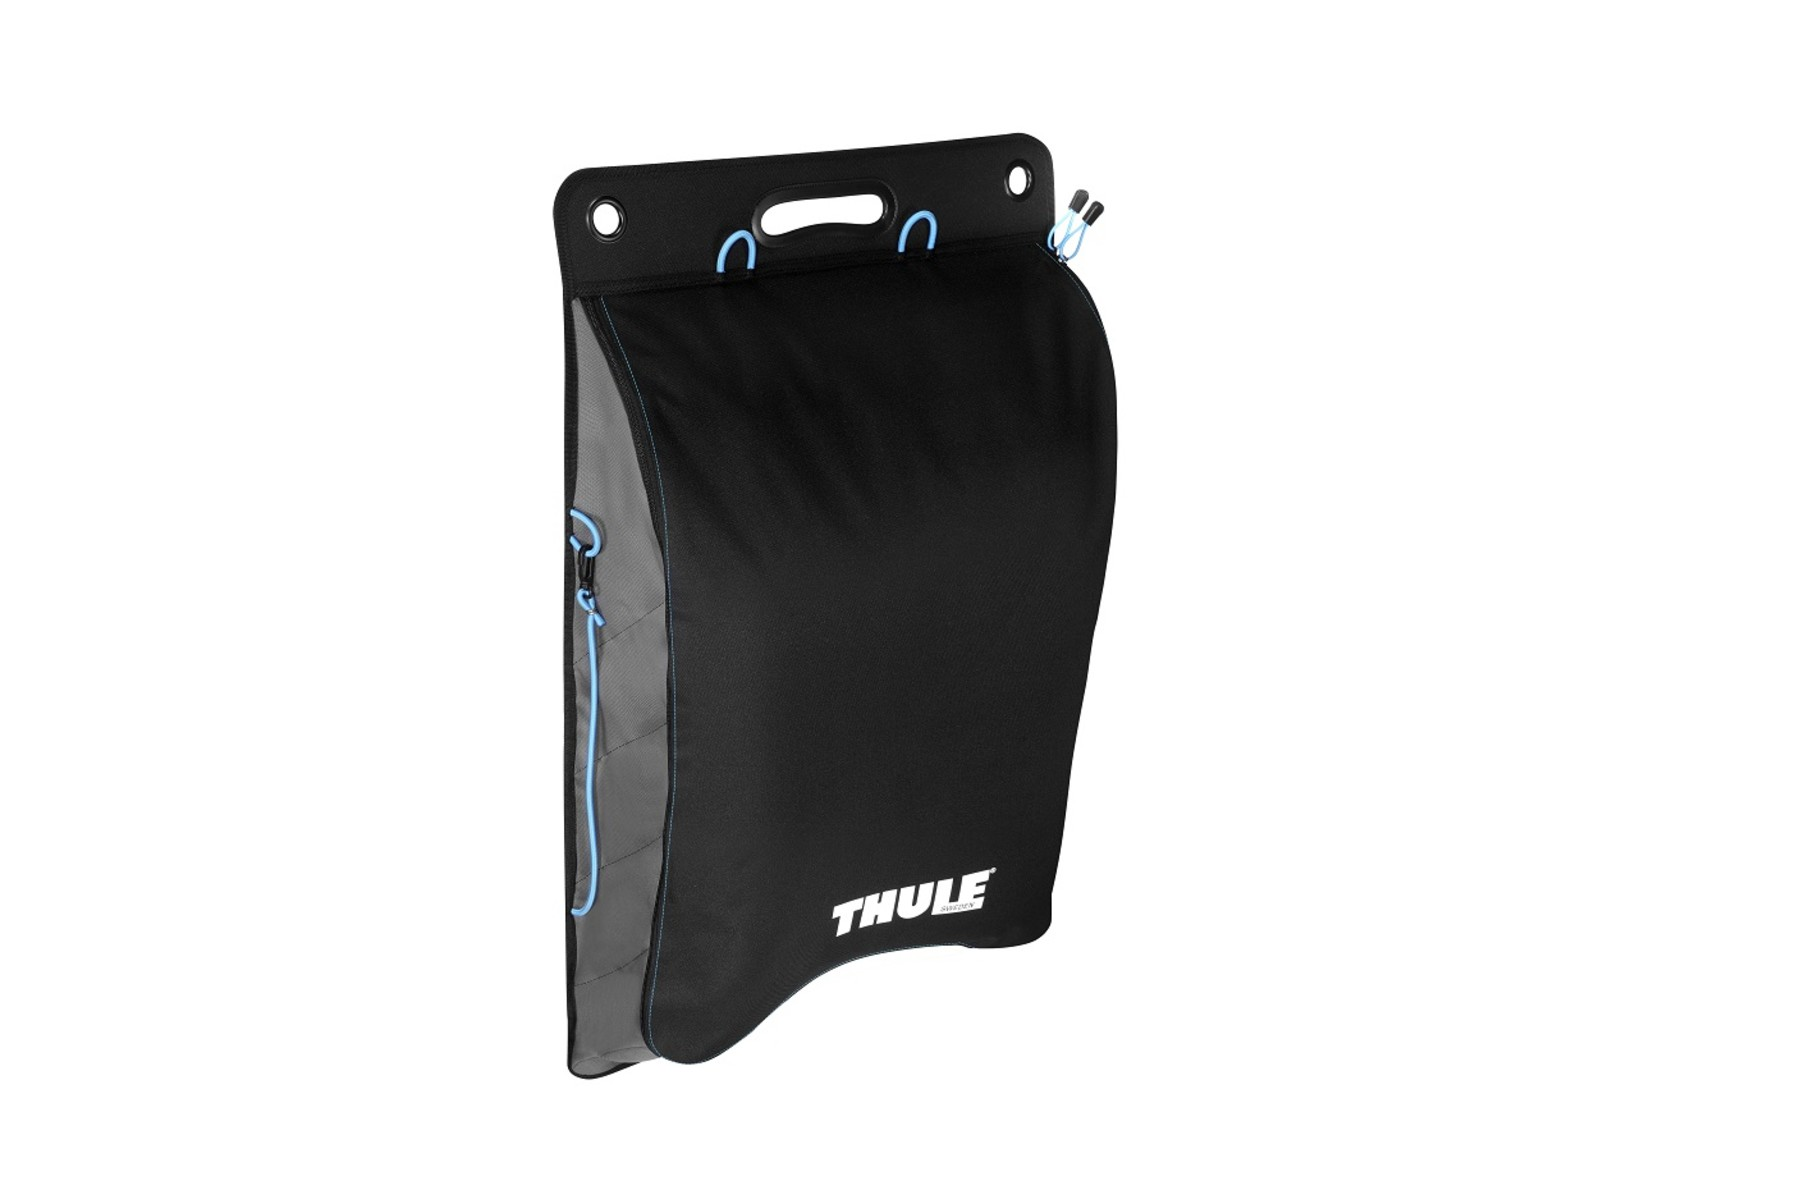 Thule Wall Organizer Closed